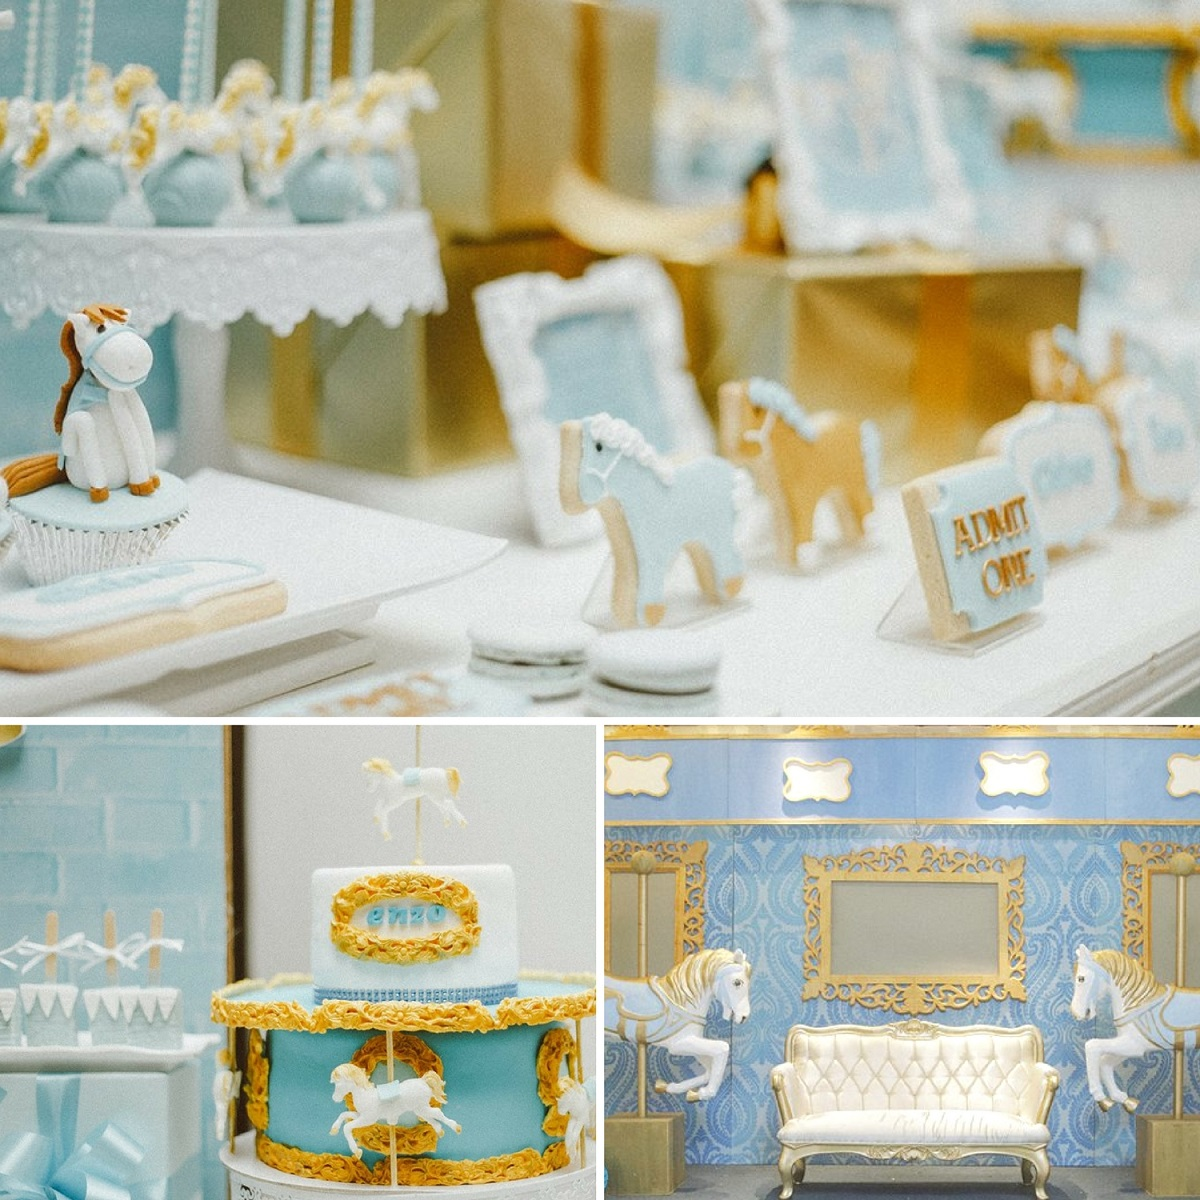 blue-carousel-baptism-baby-shower-ideas